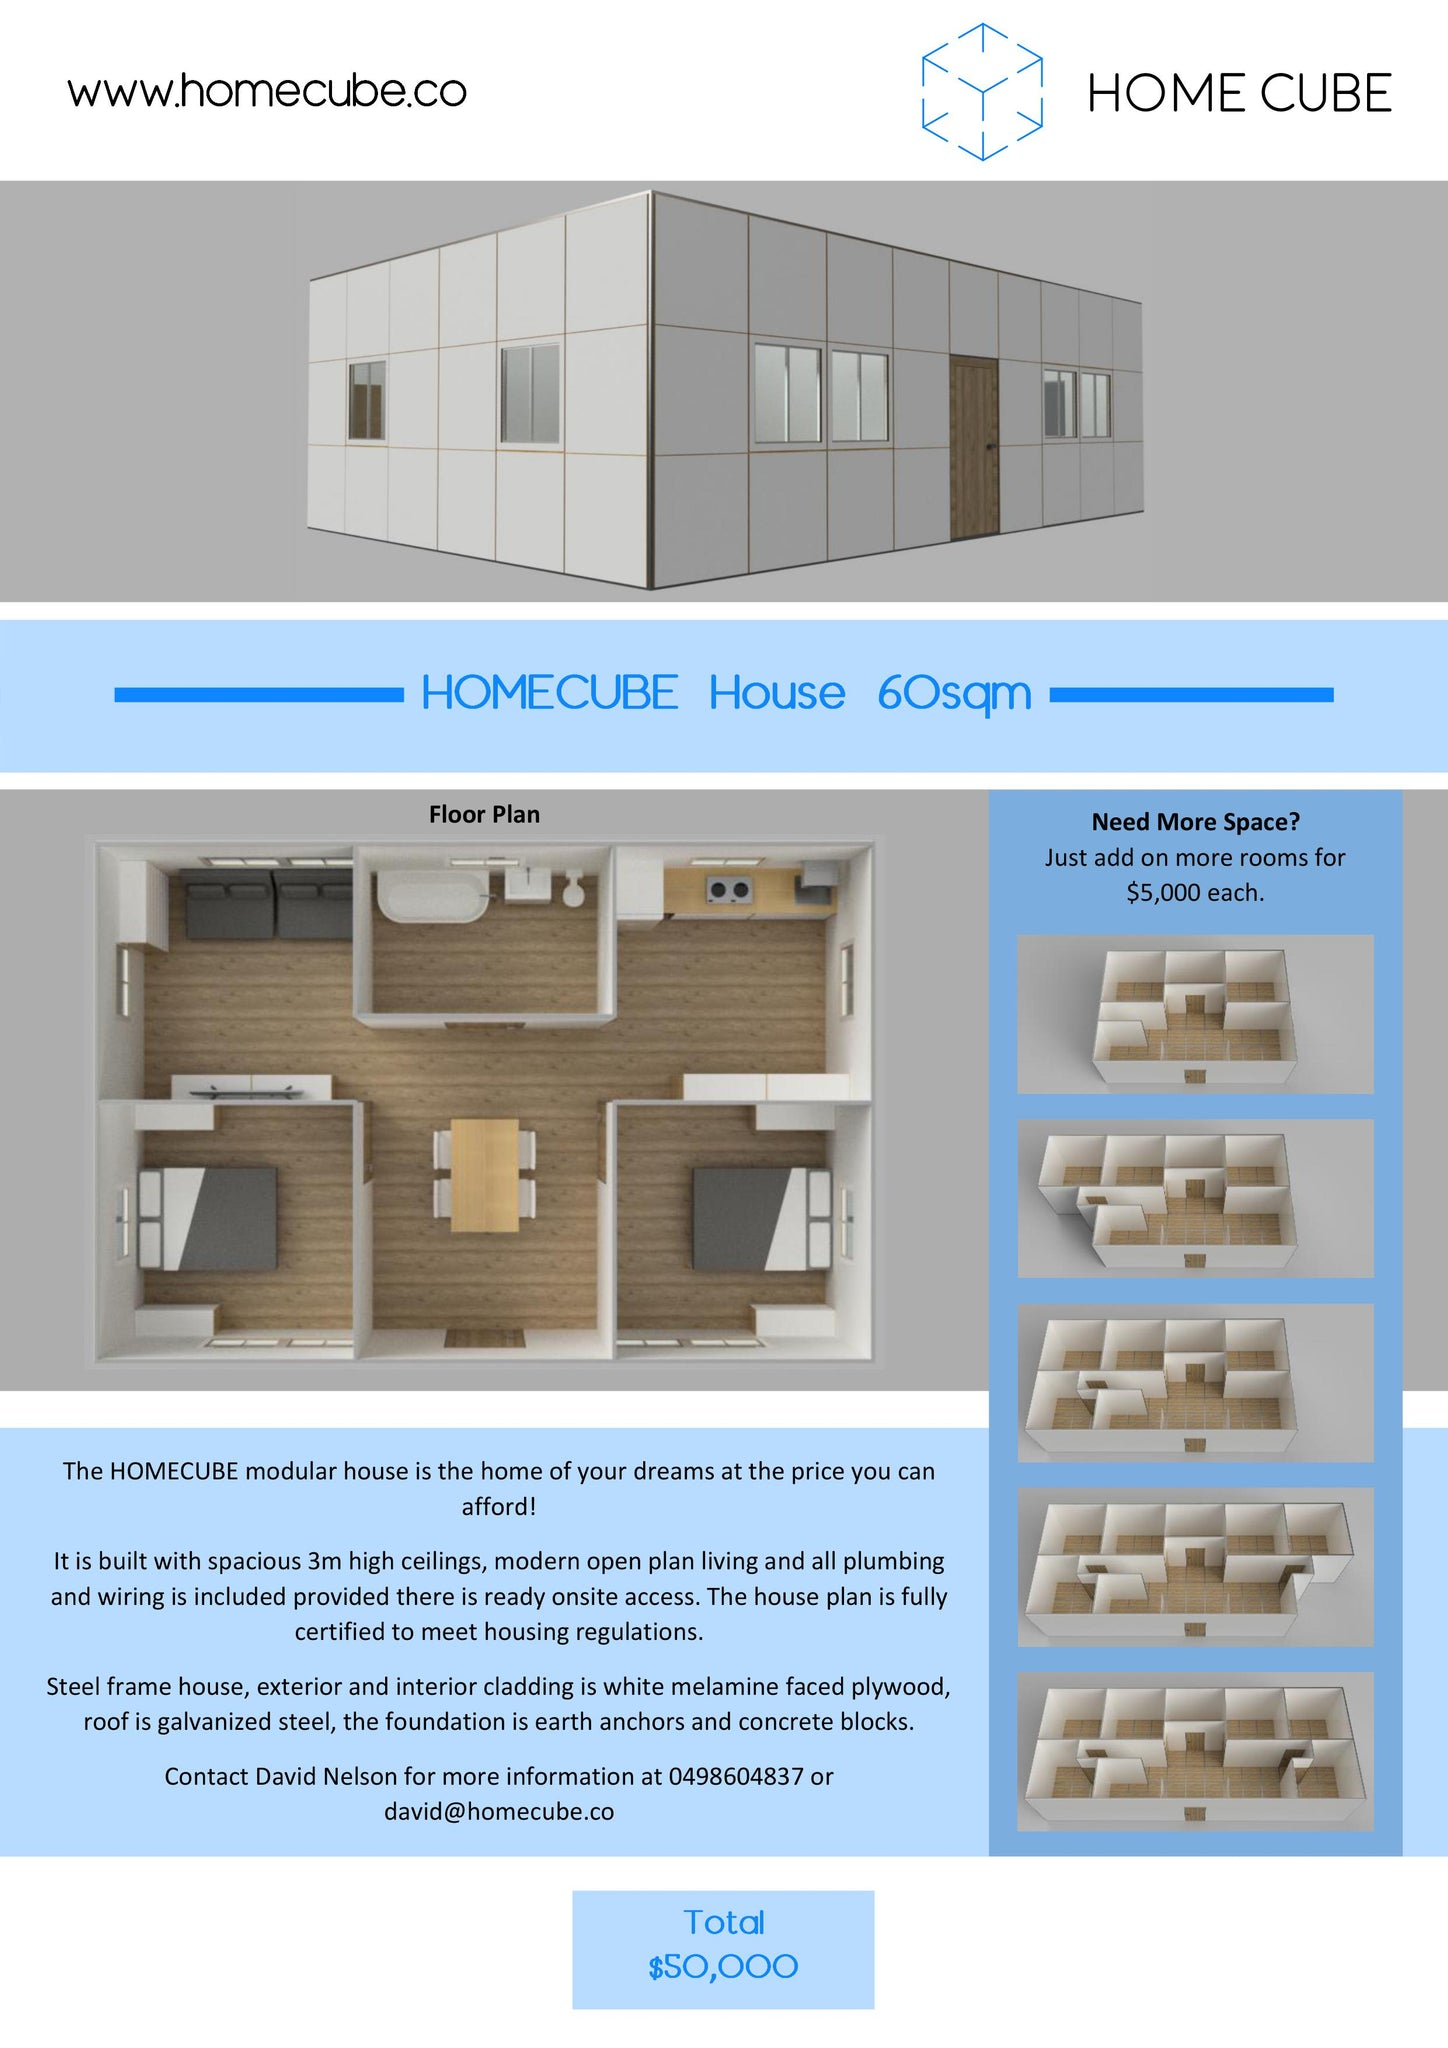 Two Bedroom HOMECUBE House